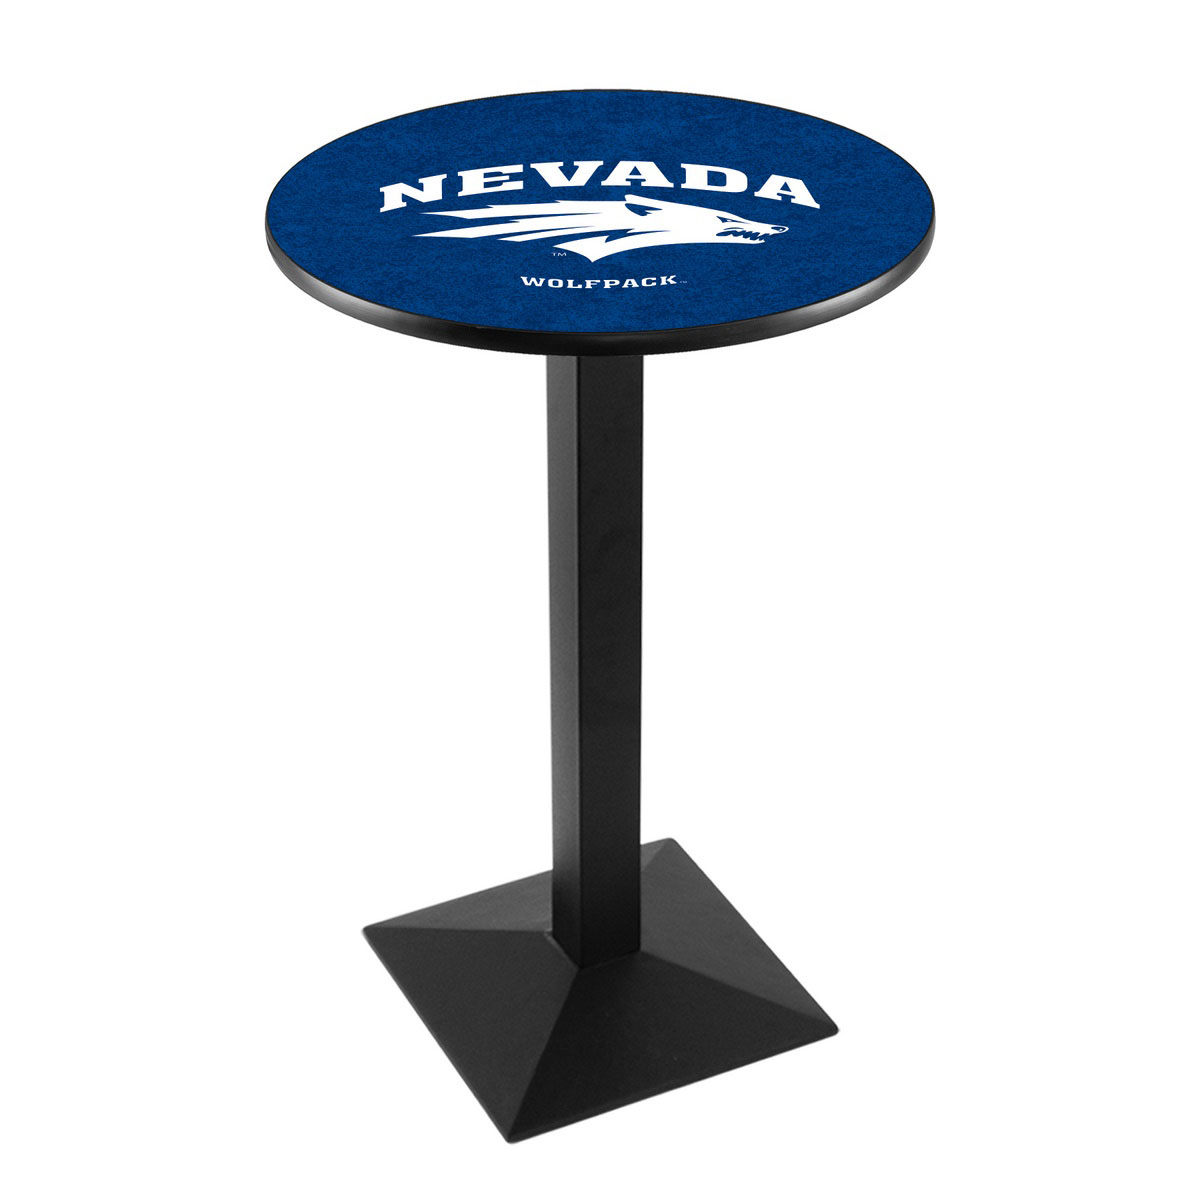 Remarkable University Nevada Logo Pub Bar Table Square Stand Product Photo